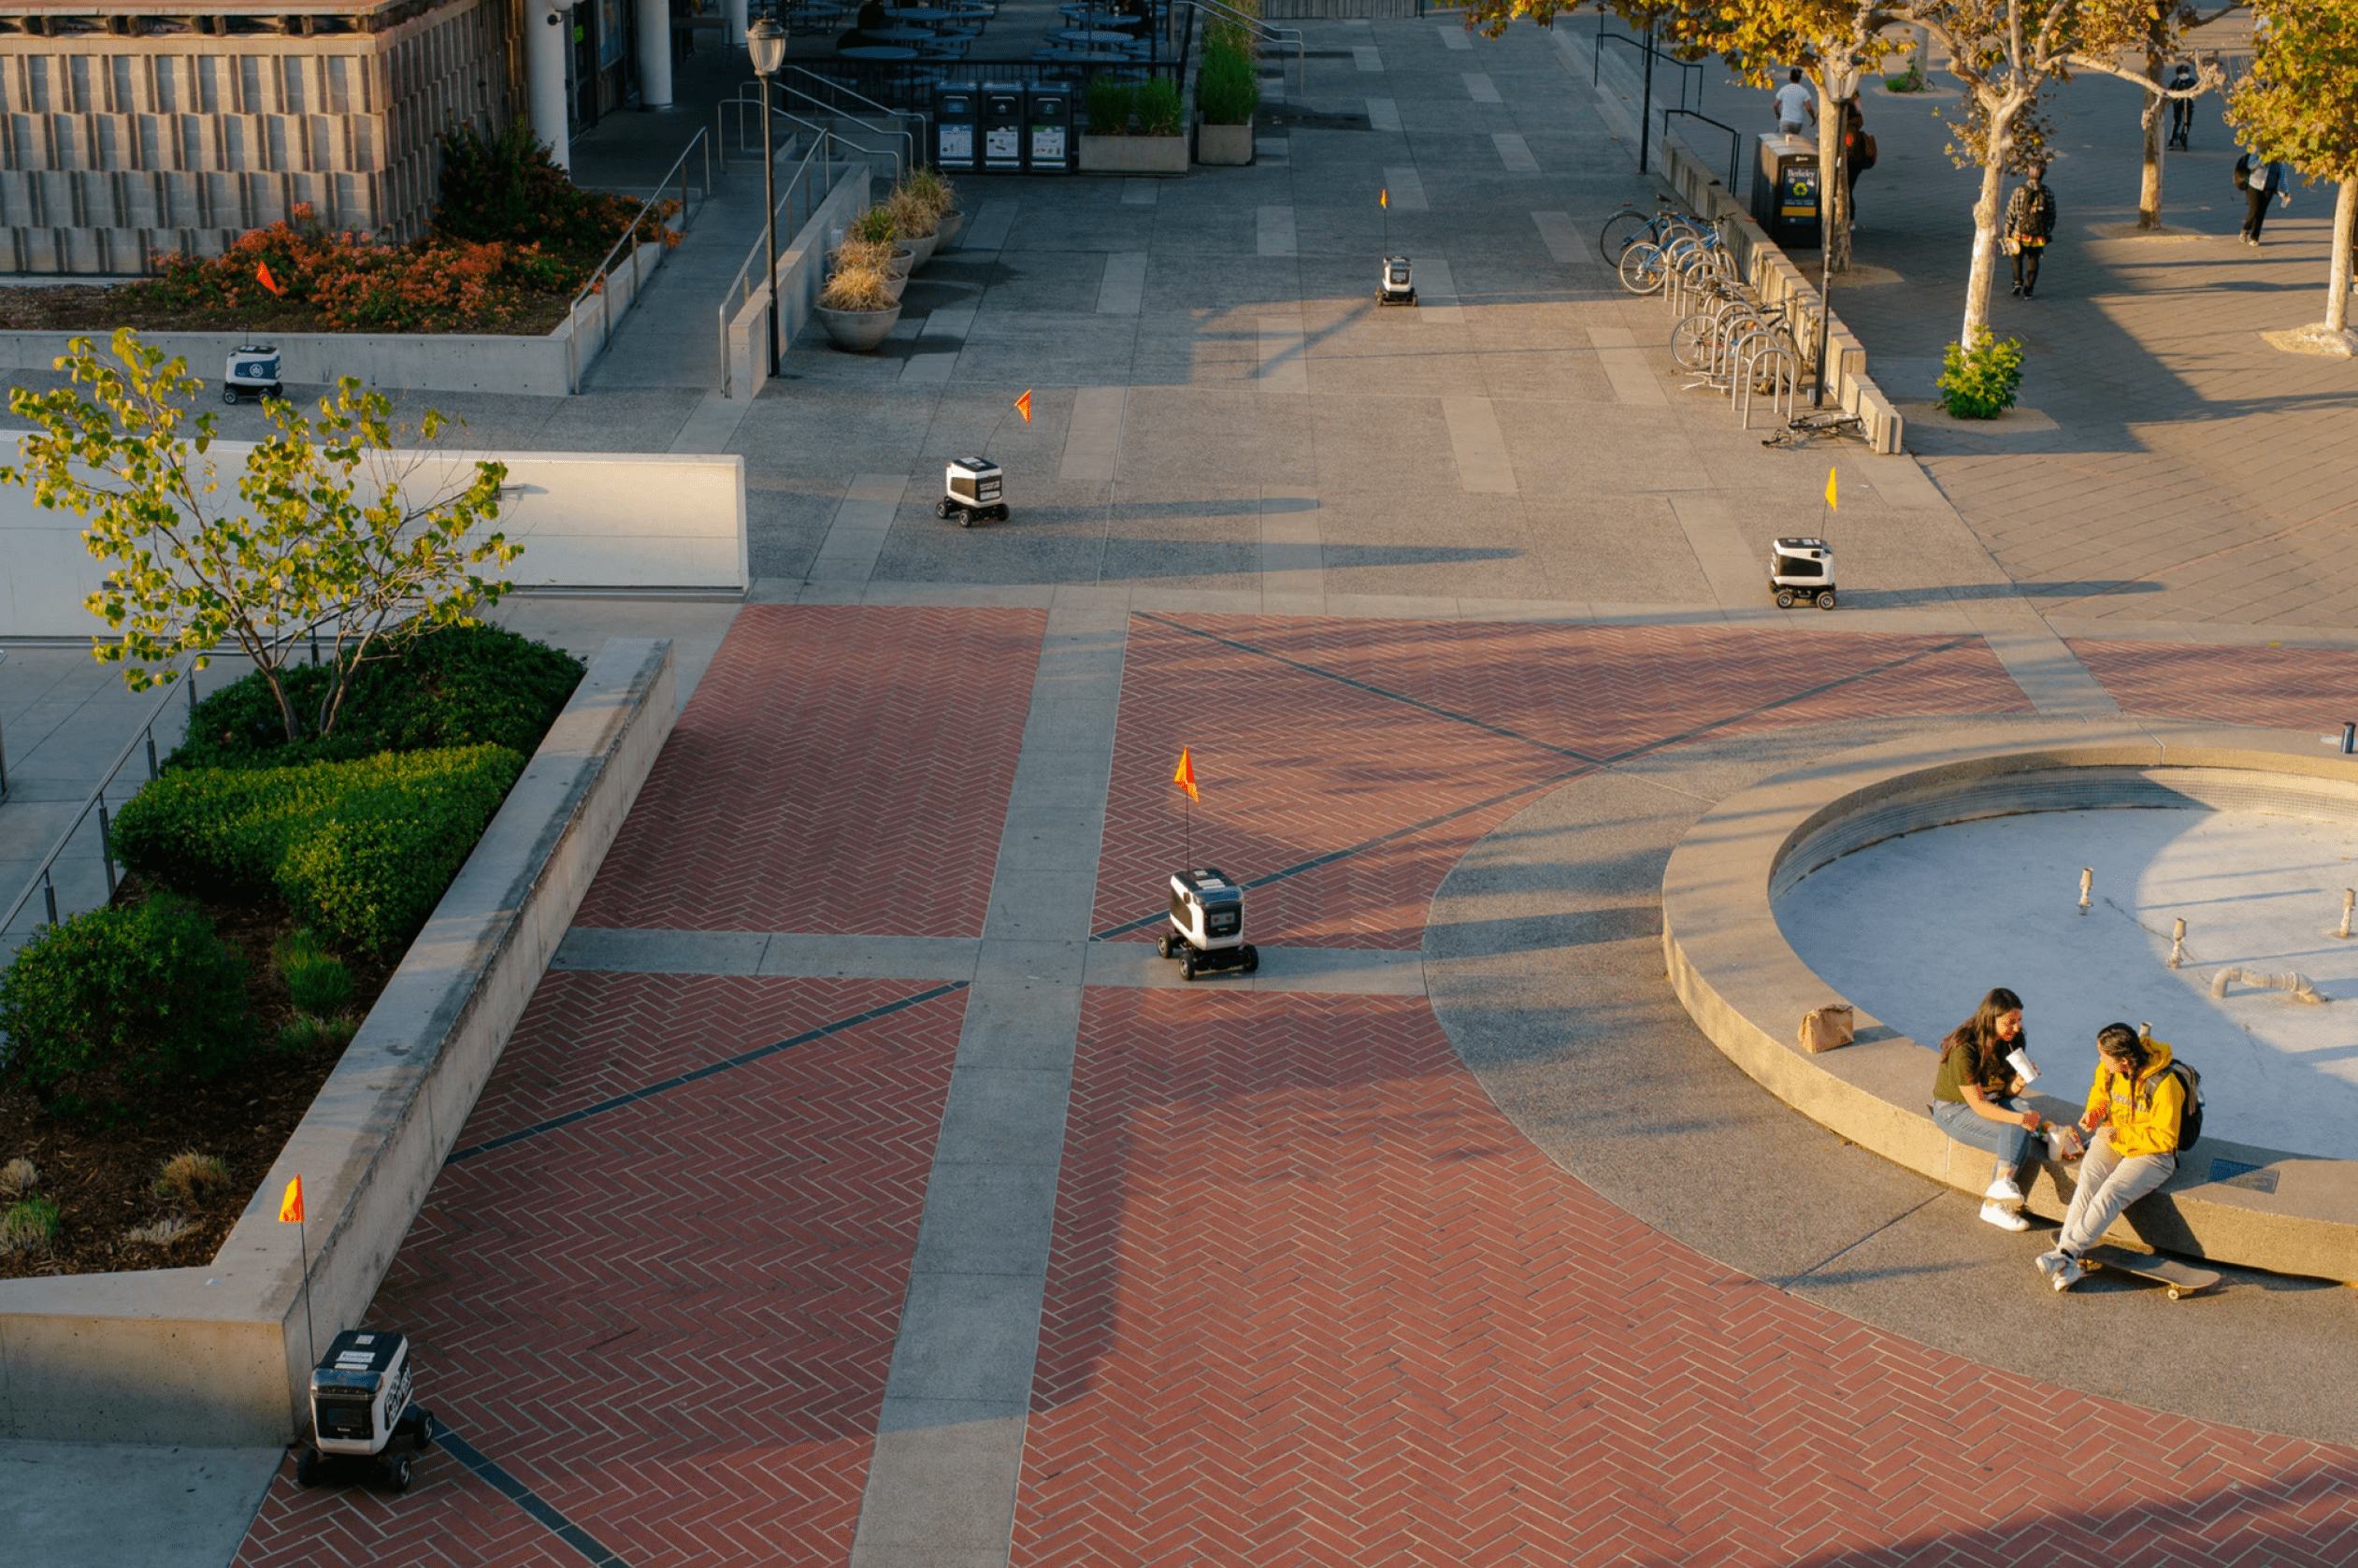 Robot delivery service for college campus